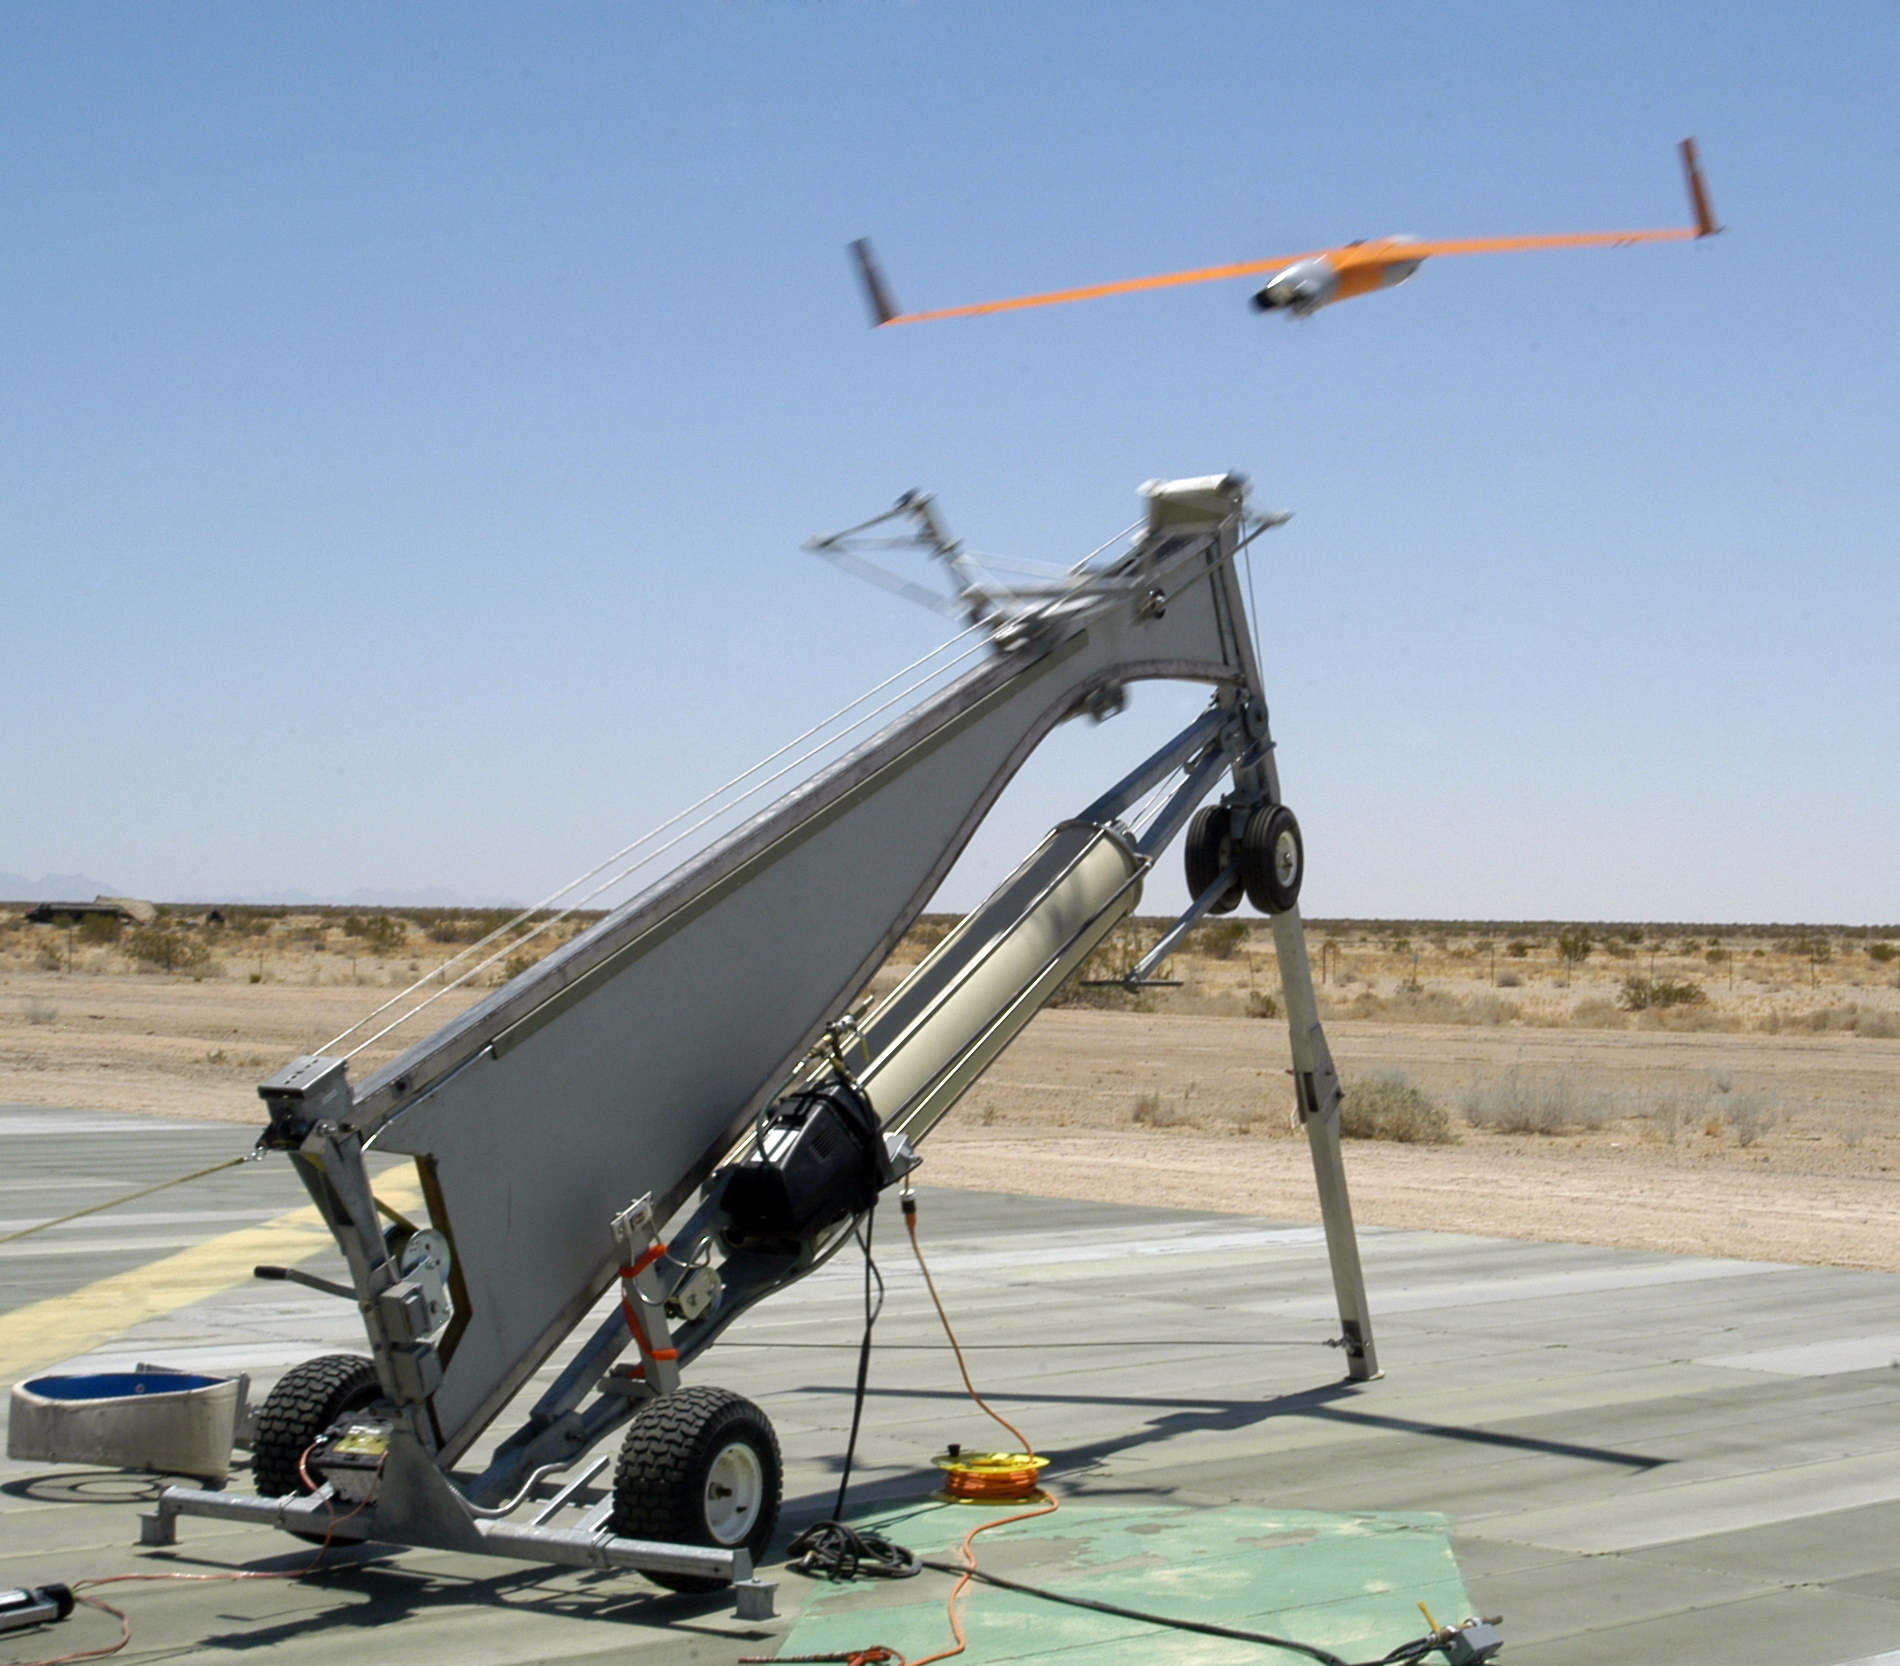 rc uav with File Us Navy 060619 M 8788s 004 An Unmanned Aerial Vehicle  Uav  Called Scan Eagle Launches Off A Pneumatic Wedge Catapult System To Fly Over Marine Corps Air Station Yuma For Training In Desert Talon 2006 on MLM 565393619 Drone Syma X8hg Control De Altura Cam Hd 8mpx 24ghz 360  JM moreover Global Hawk Uav Prepares For Maritime Role Updated 01218 besides Muzeum Slaskie further Taking Off With 3d Printing besides How Does A Helicopter Rudder Work.